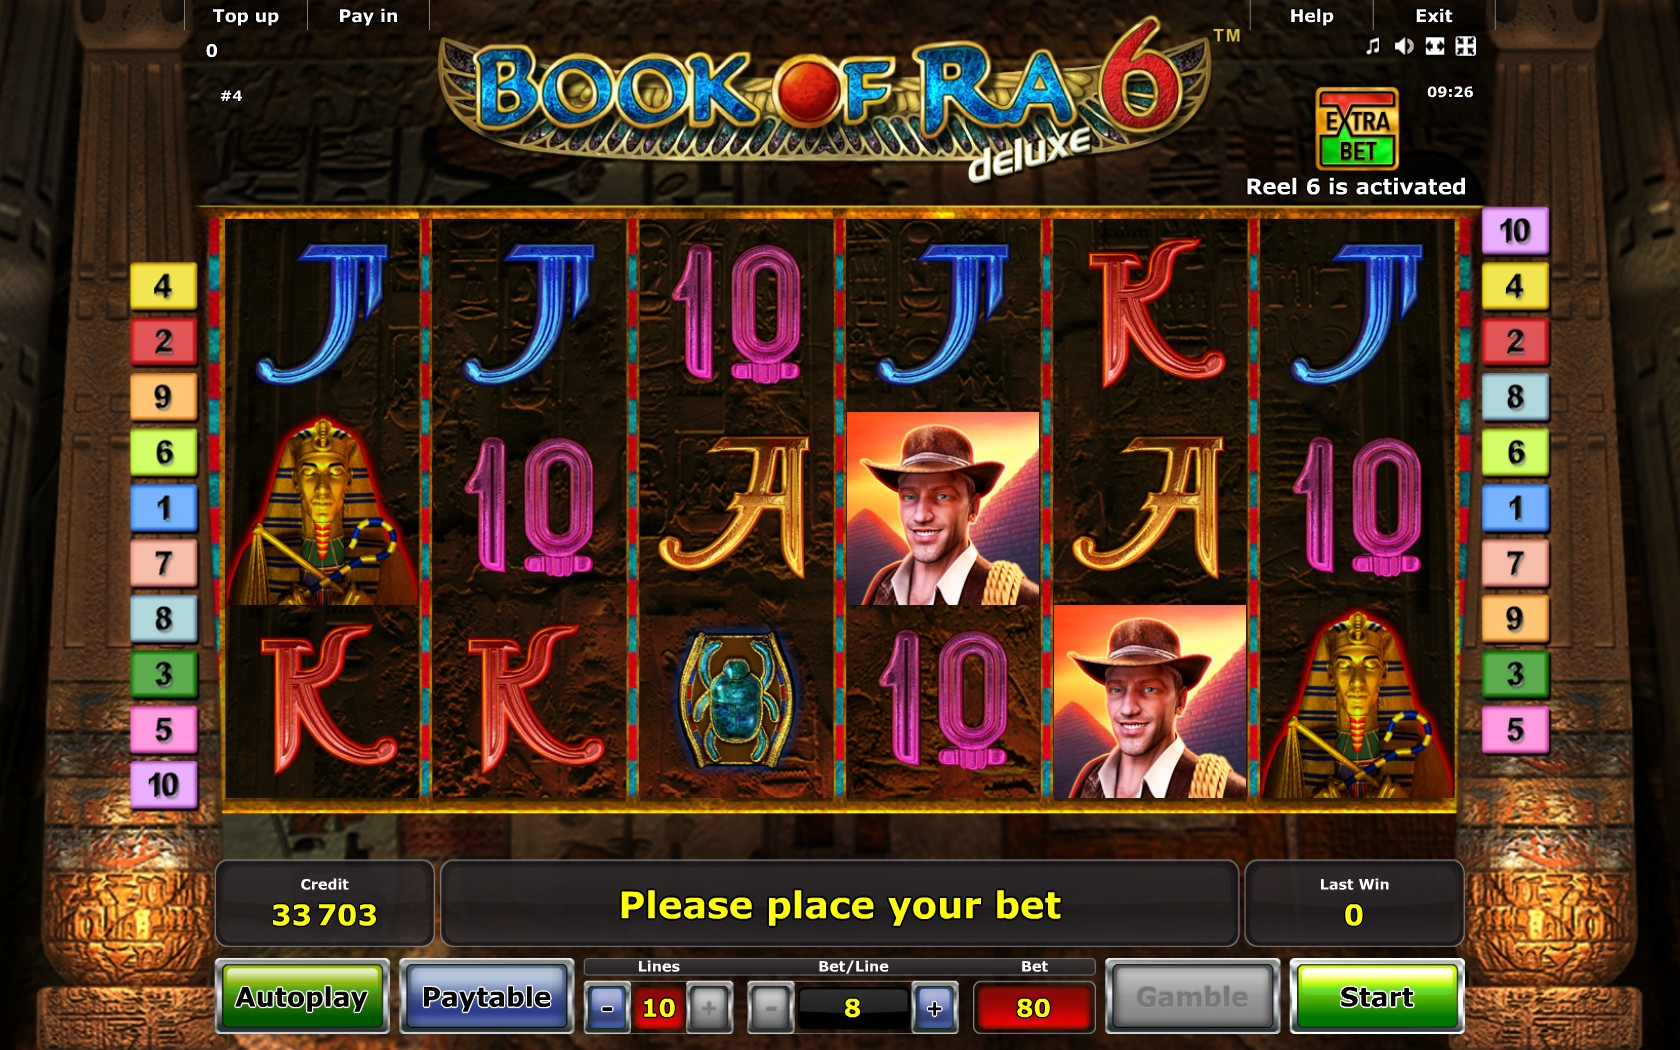 casino betting online booc of ra